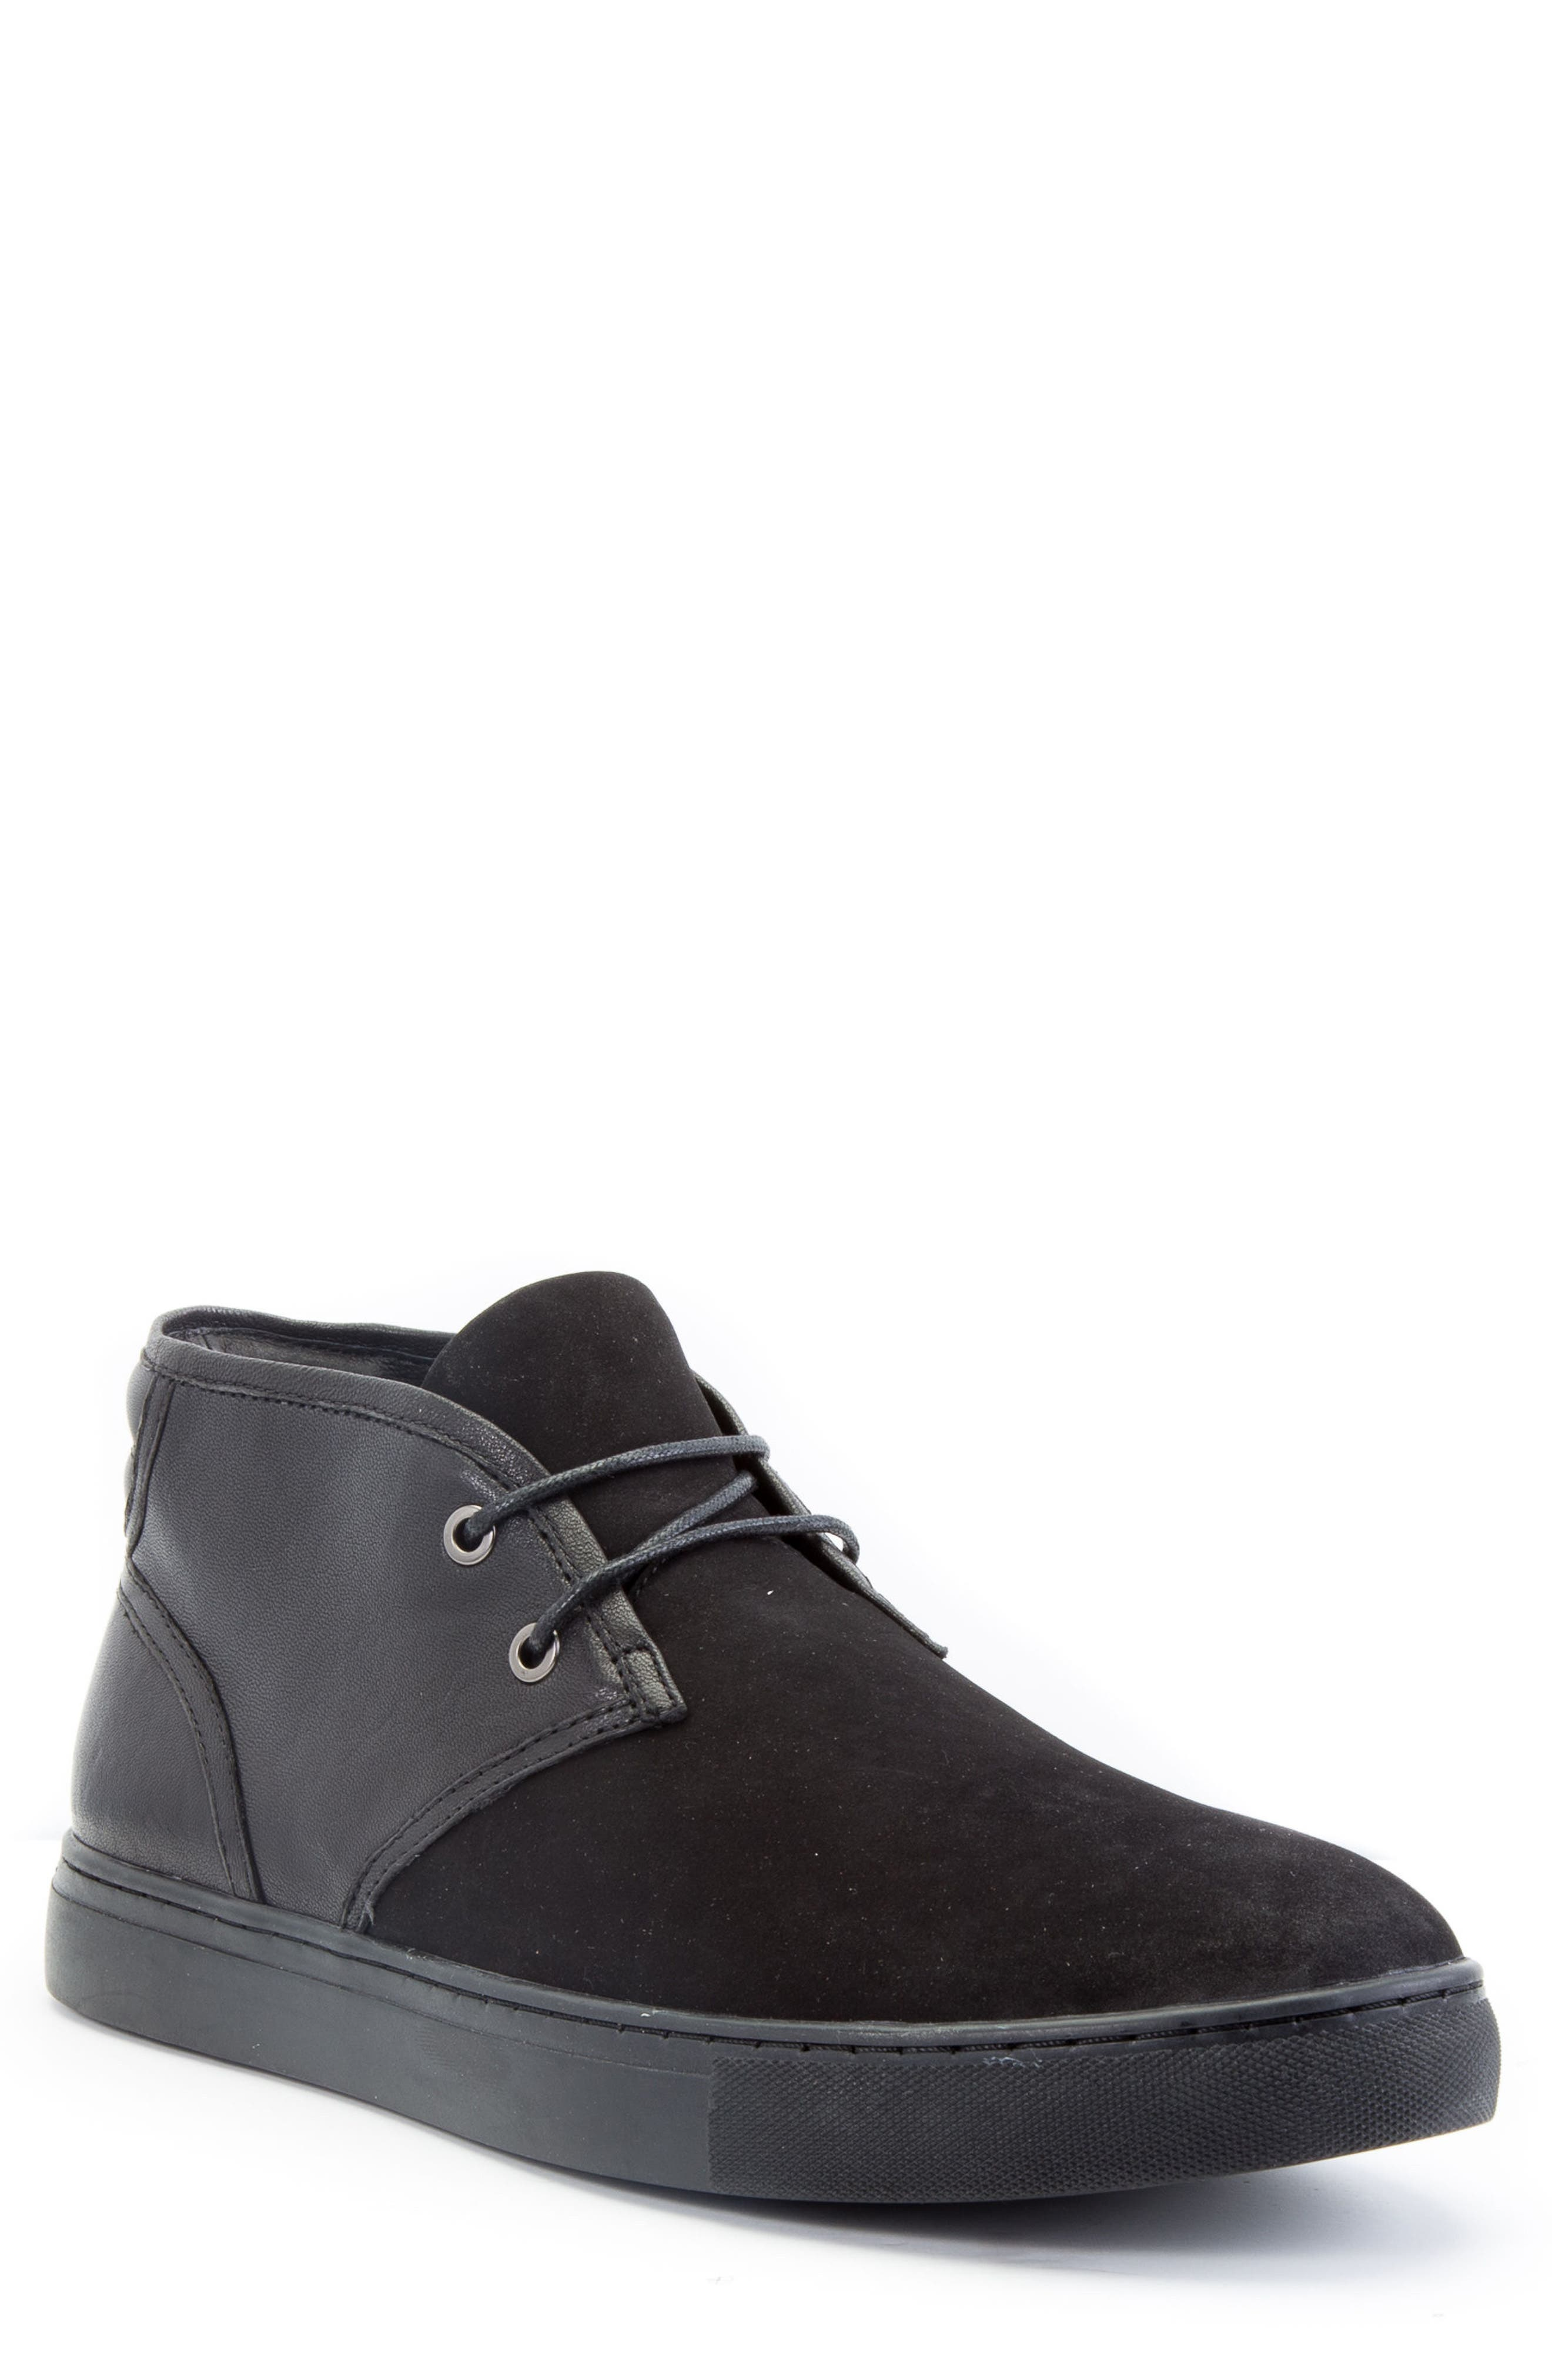 Catlett Chukka Sneaker,                             Main thumbnail 1, color,                             Black Suede/ Leather